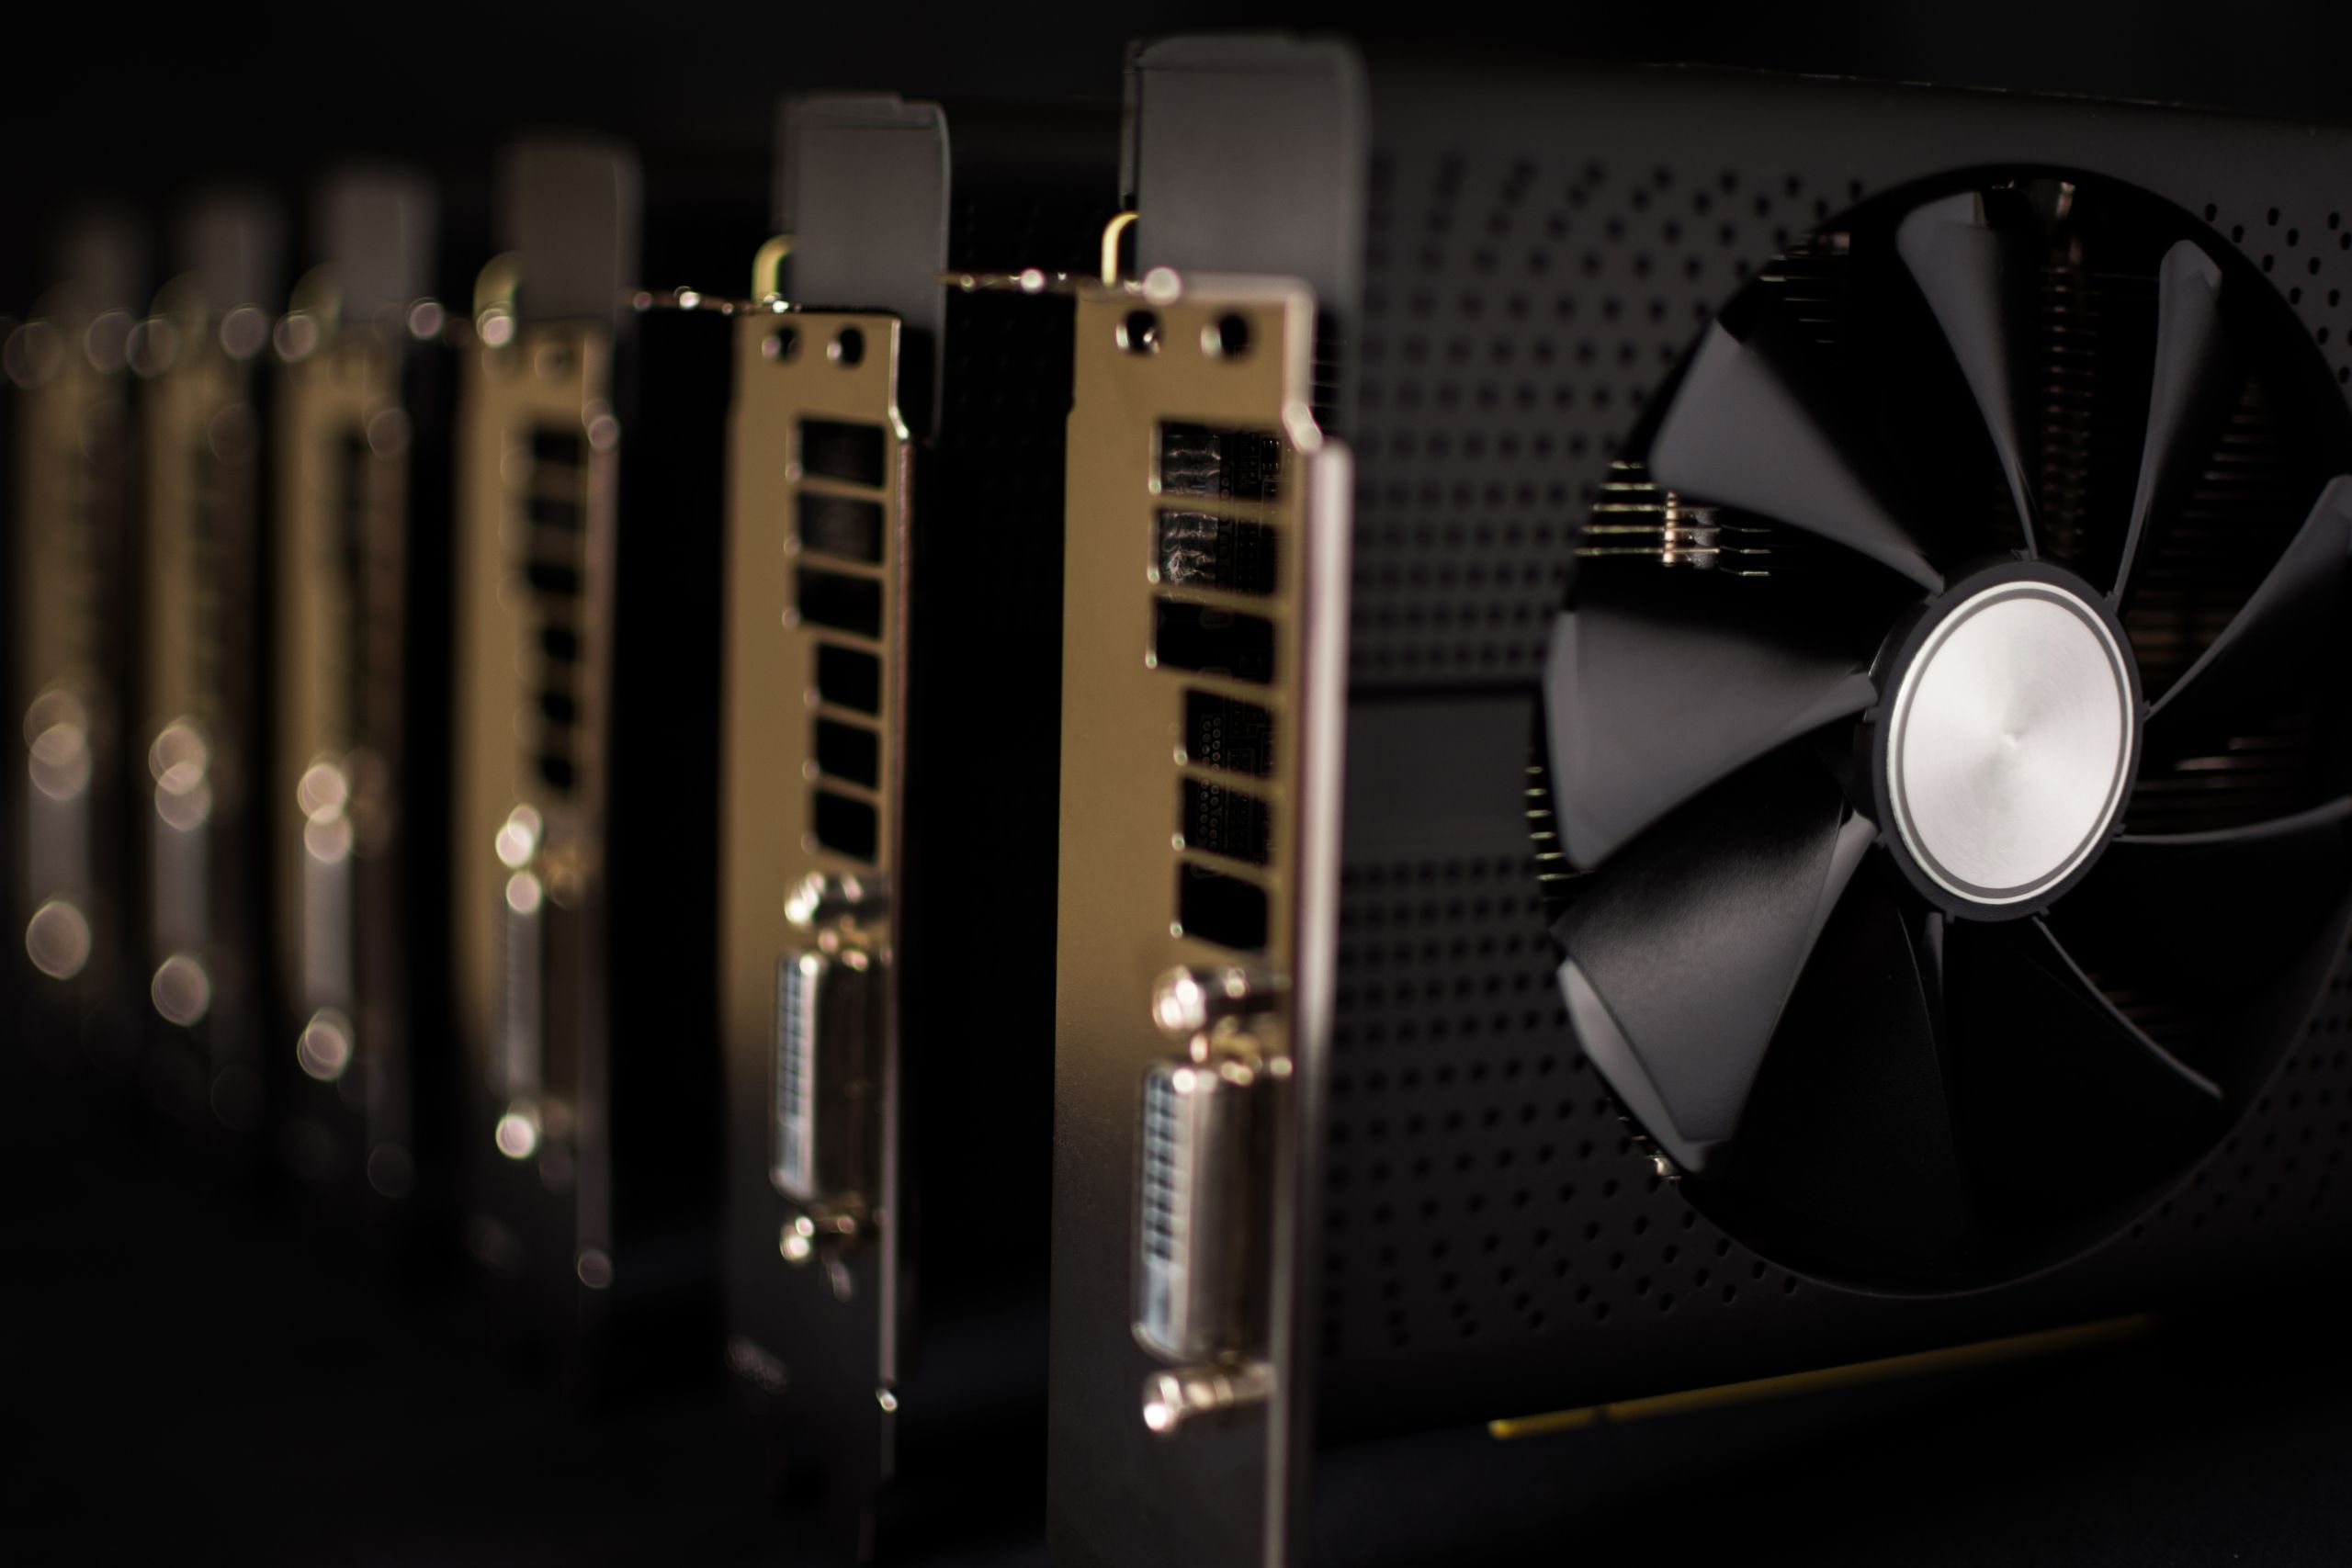 OLB Group Surges After Starting Bitcoin Mining Operation